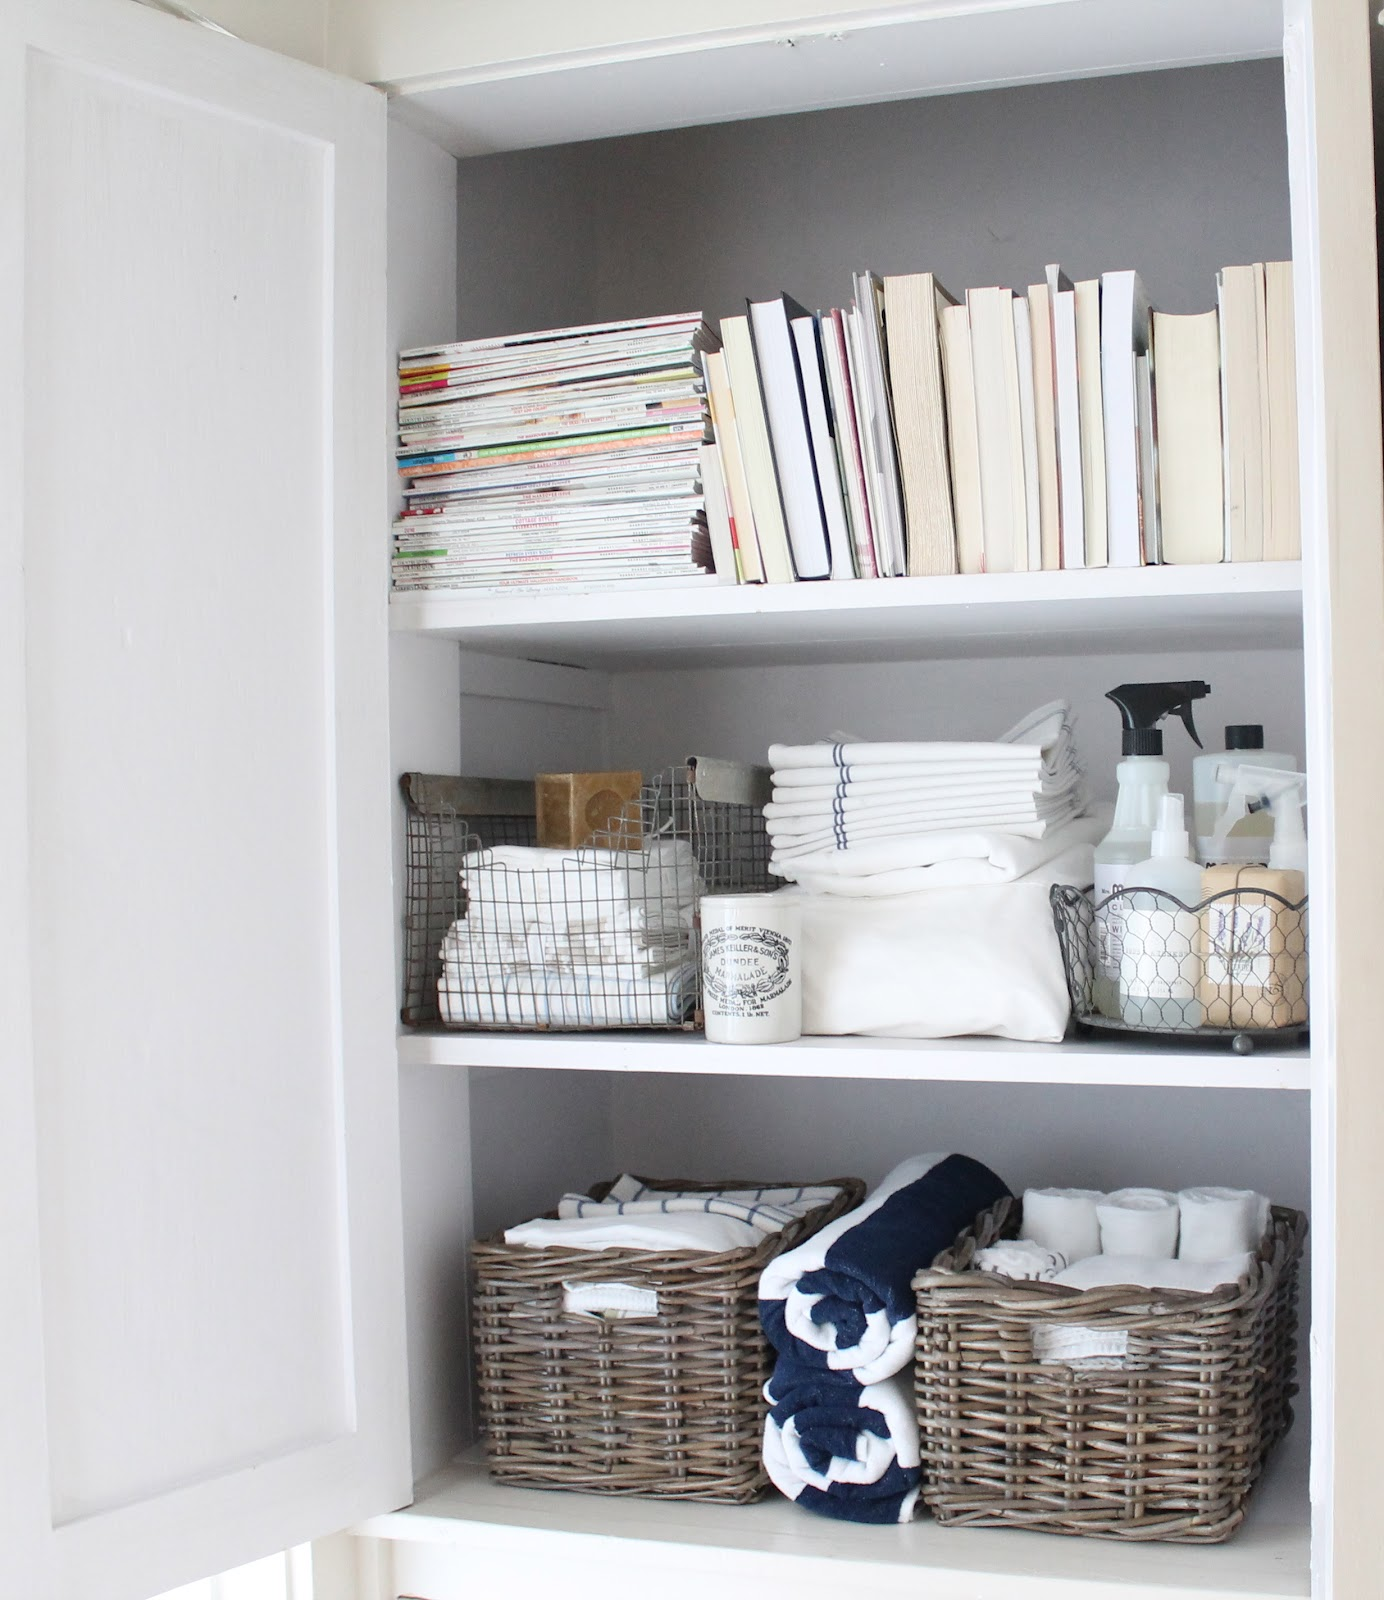 linen closet shelving ideas - 12th and White The Linen Closet Small Space Storage